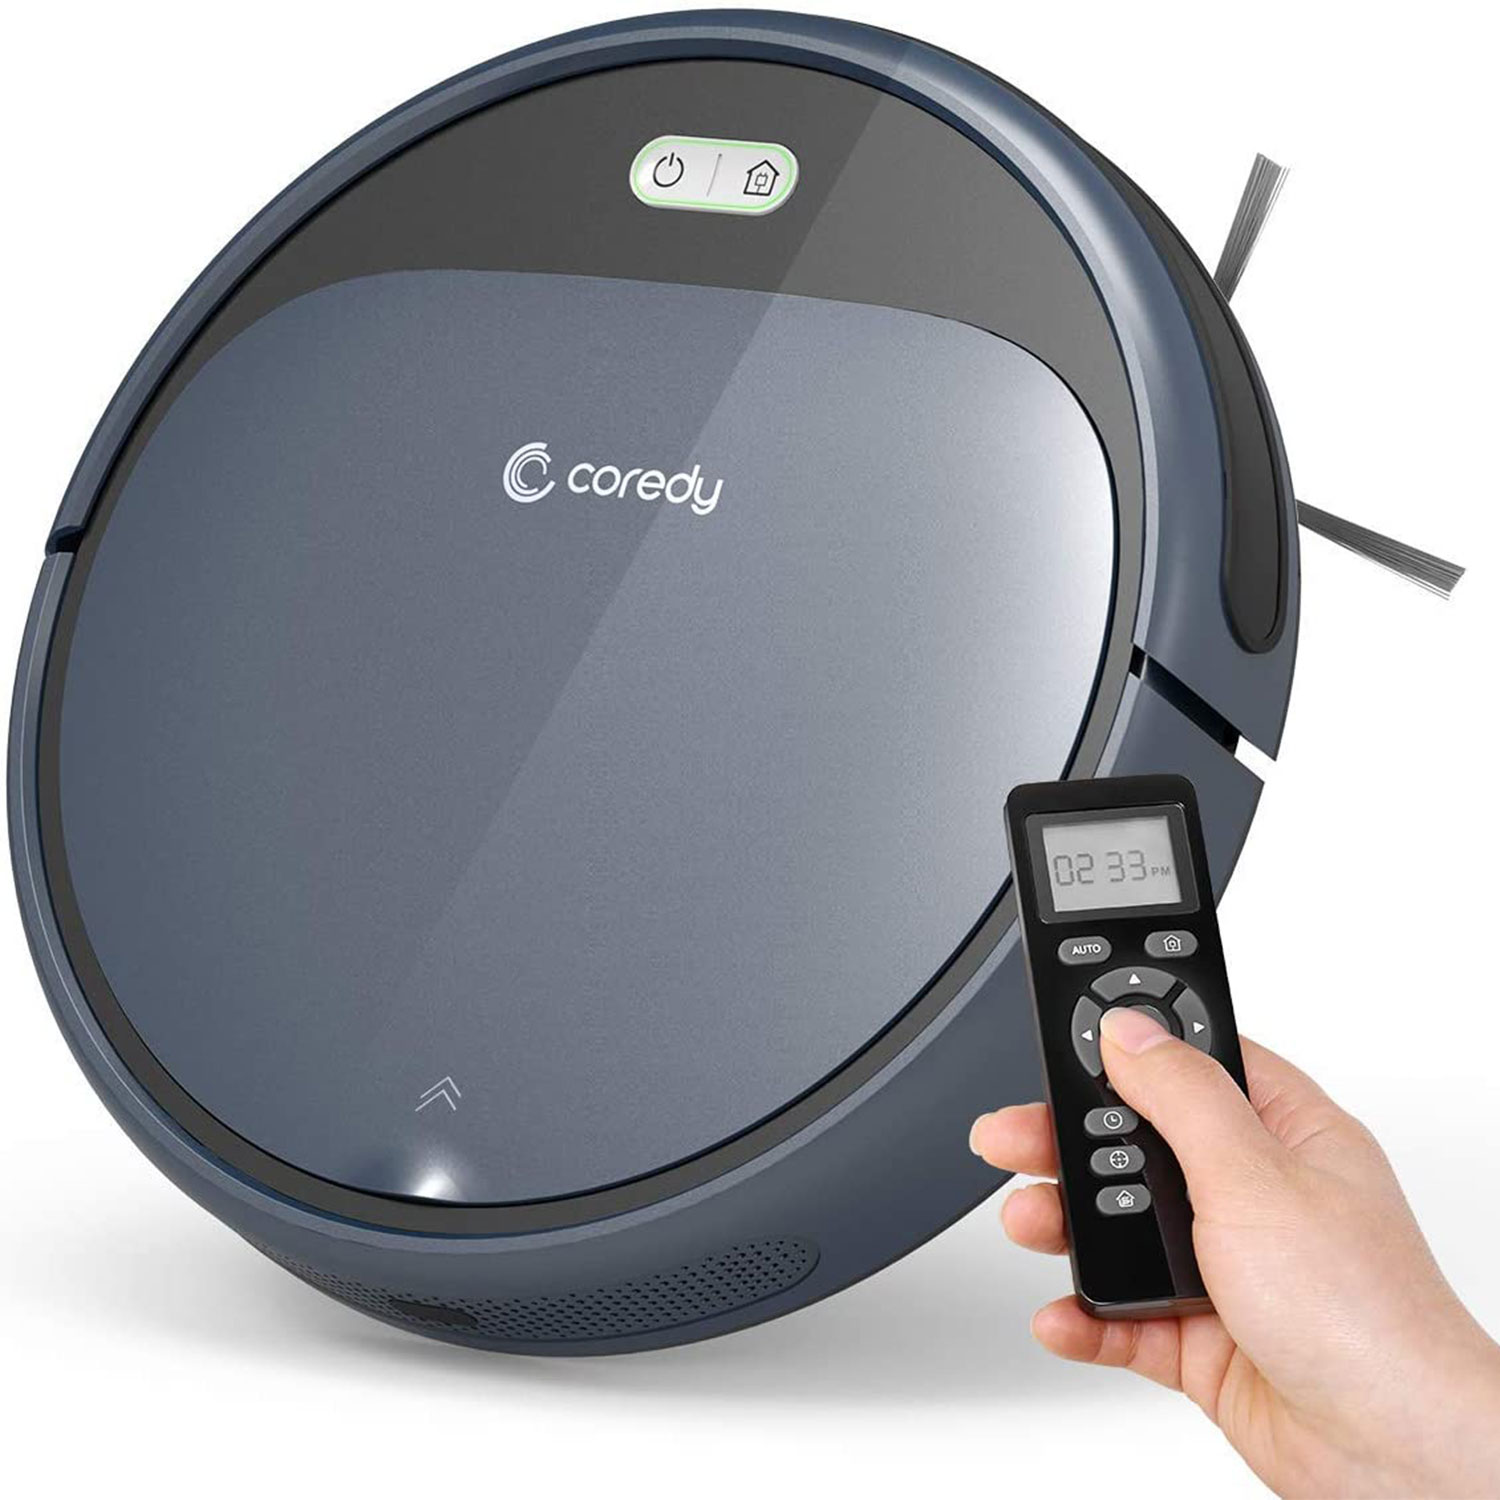 Coredy Self-Charging Robot Vacuum Cleaner